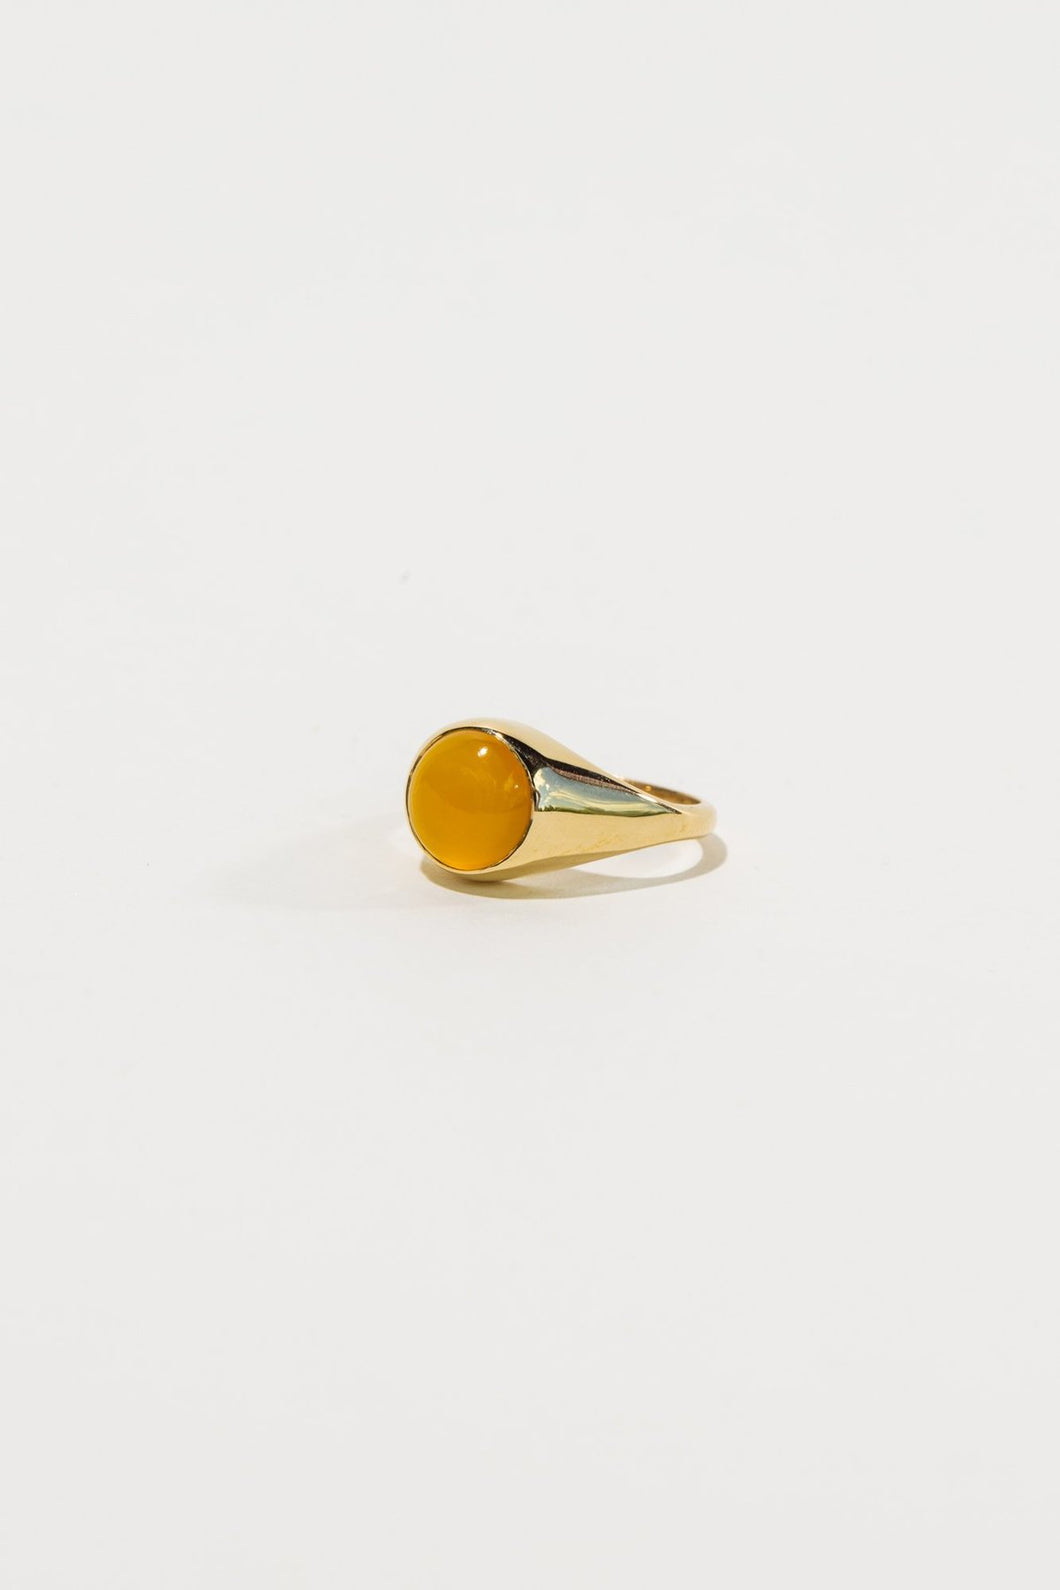 Primary Ring | Yellow - Luiny